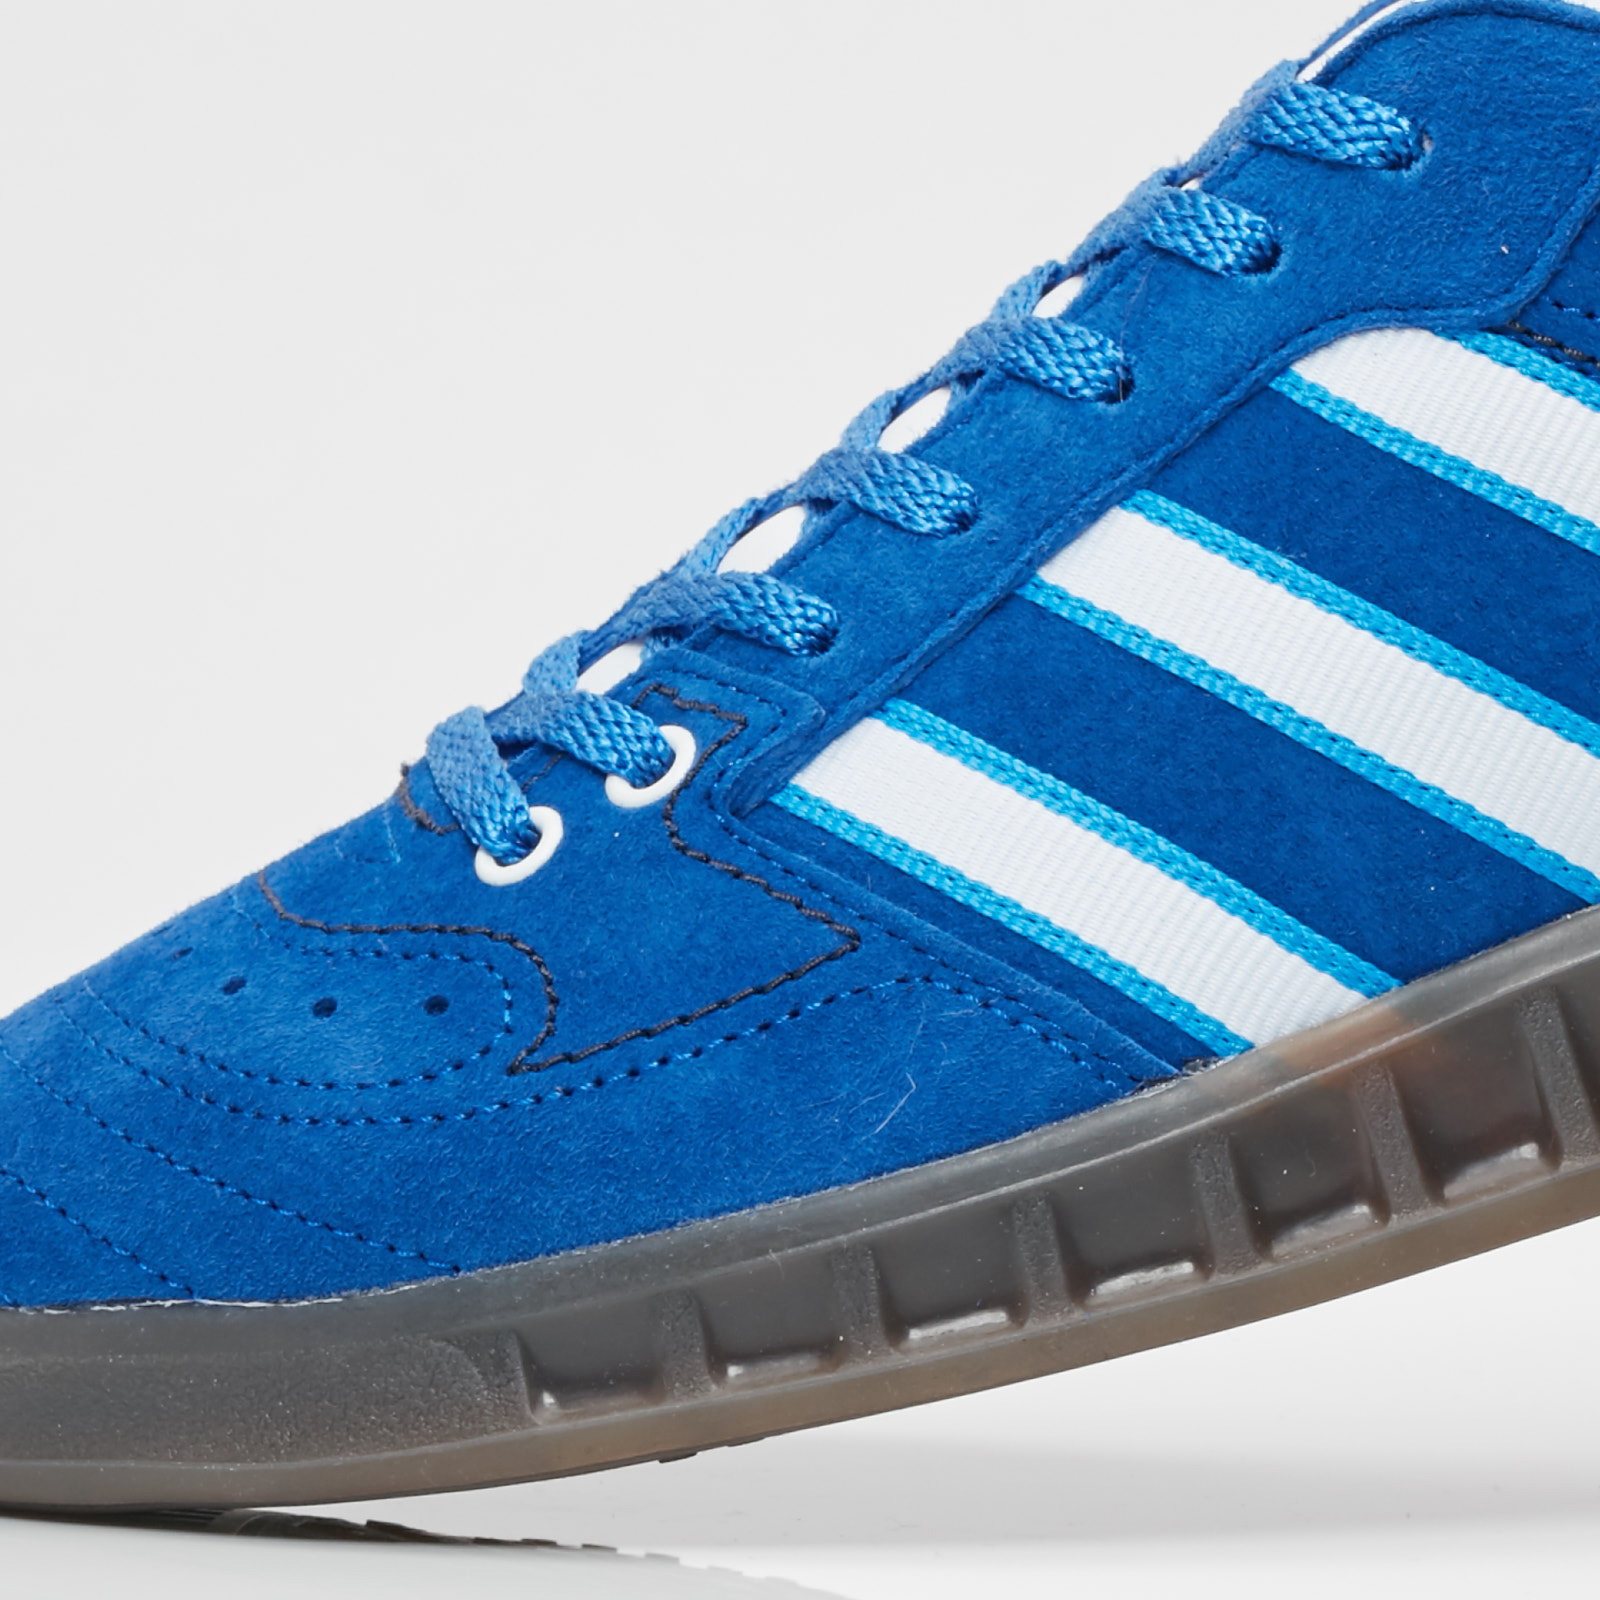 huge discount 38ed0 f8f5e adidas Originals Spezial Handball Kreft - 6. Close